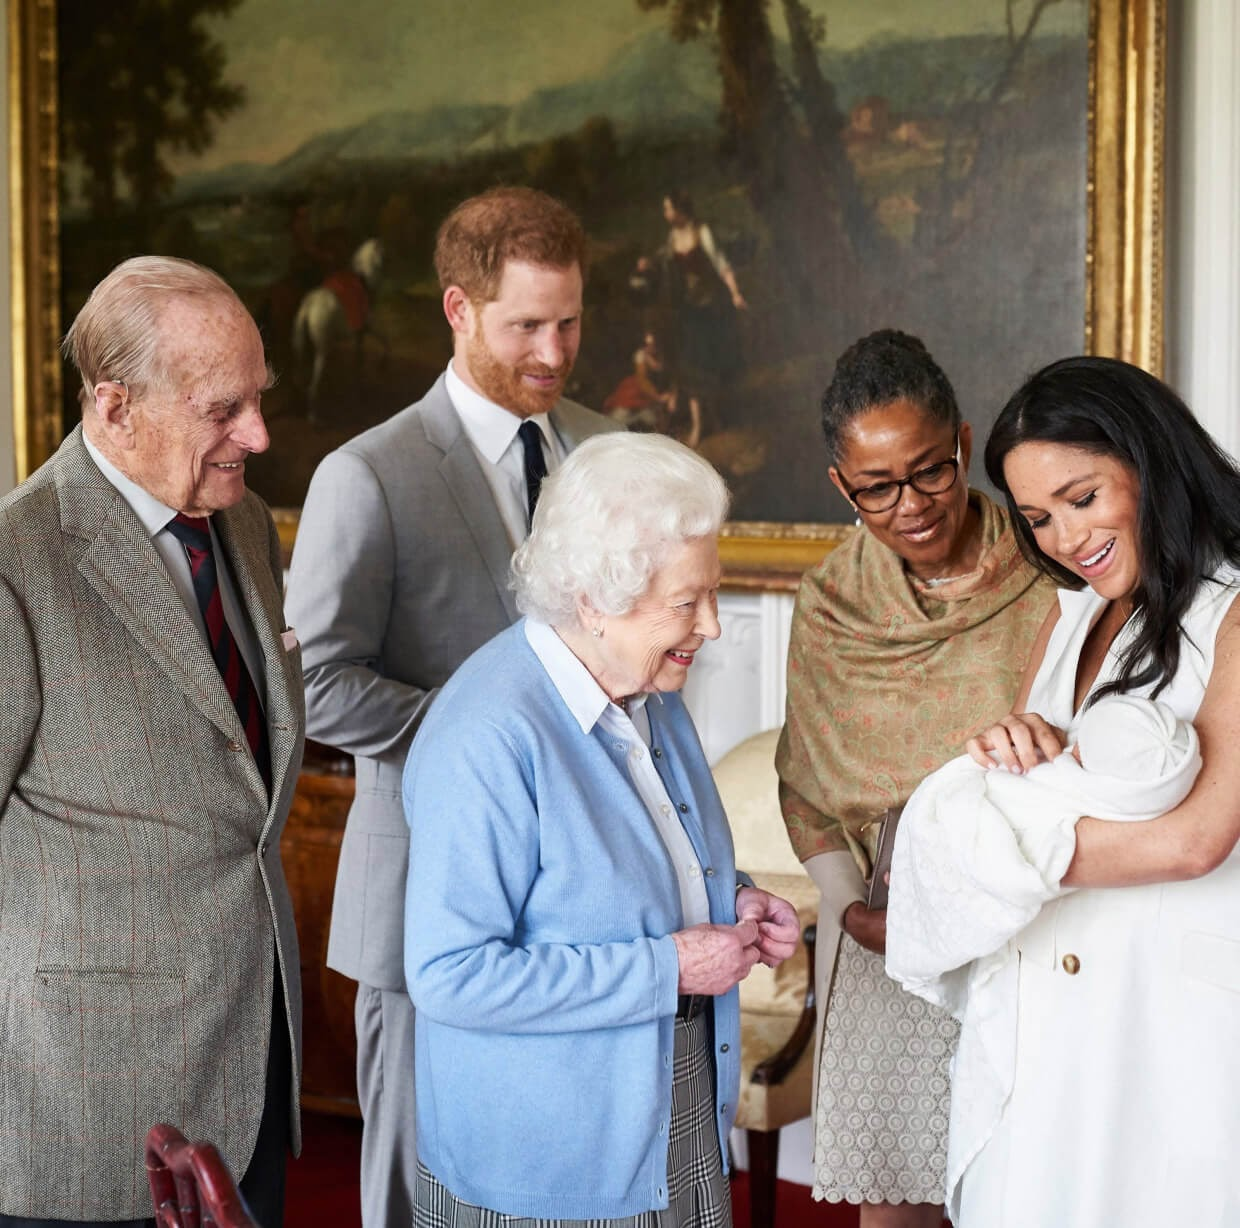 Royal family meeting Archie